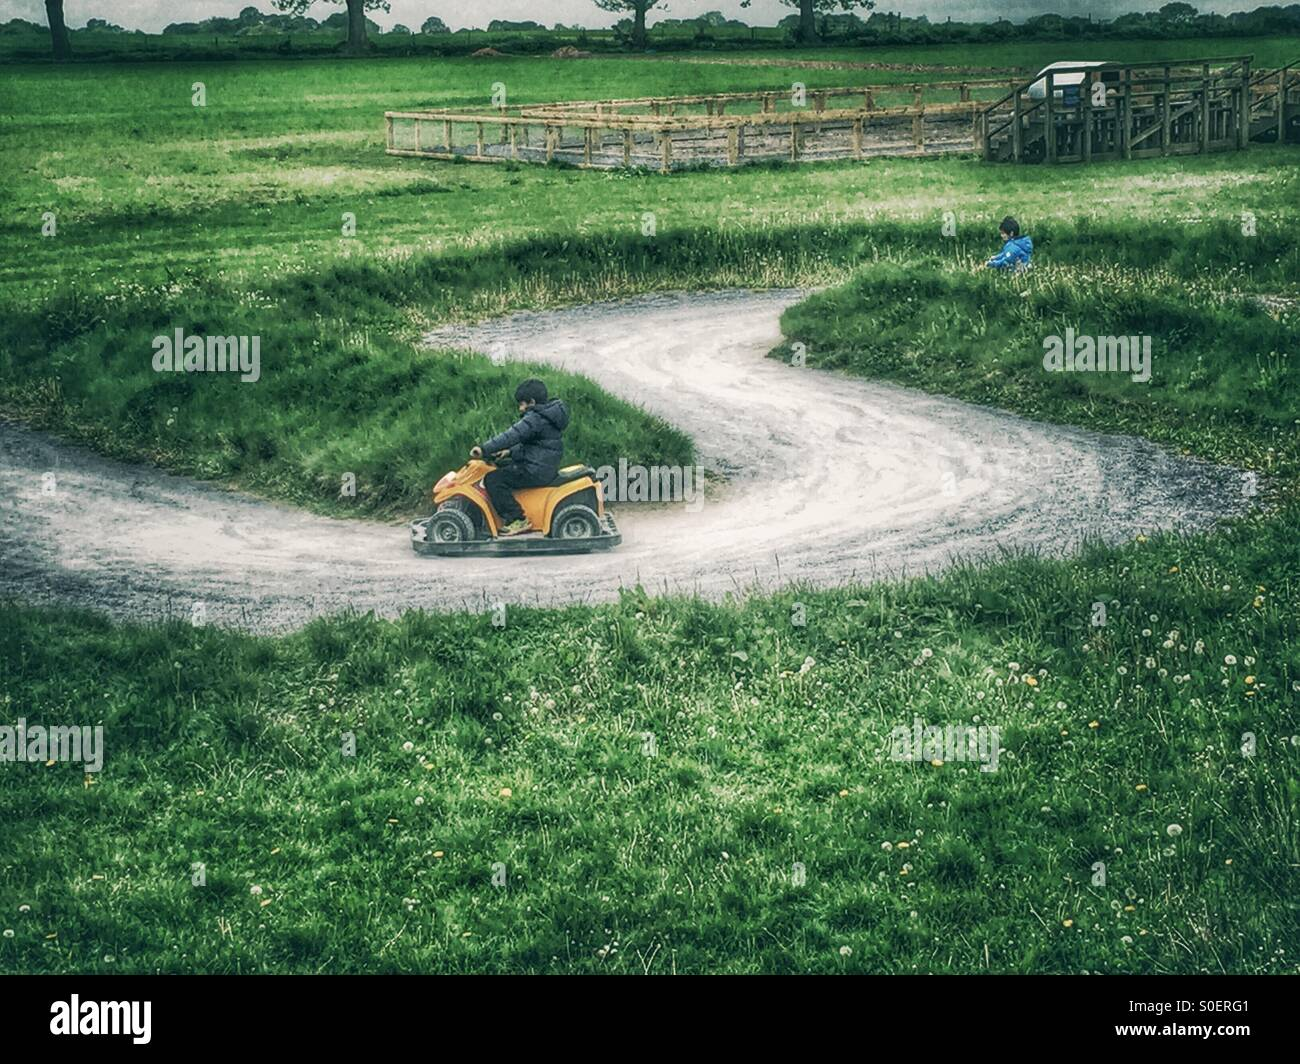 Children kart racing - Stock Image